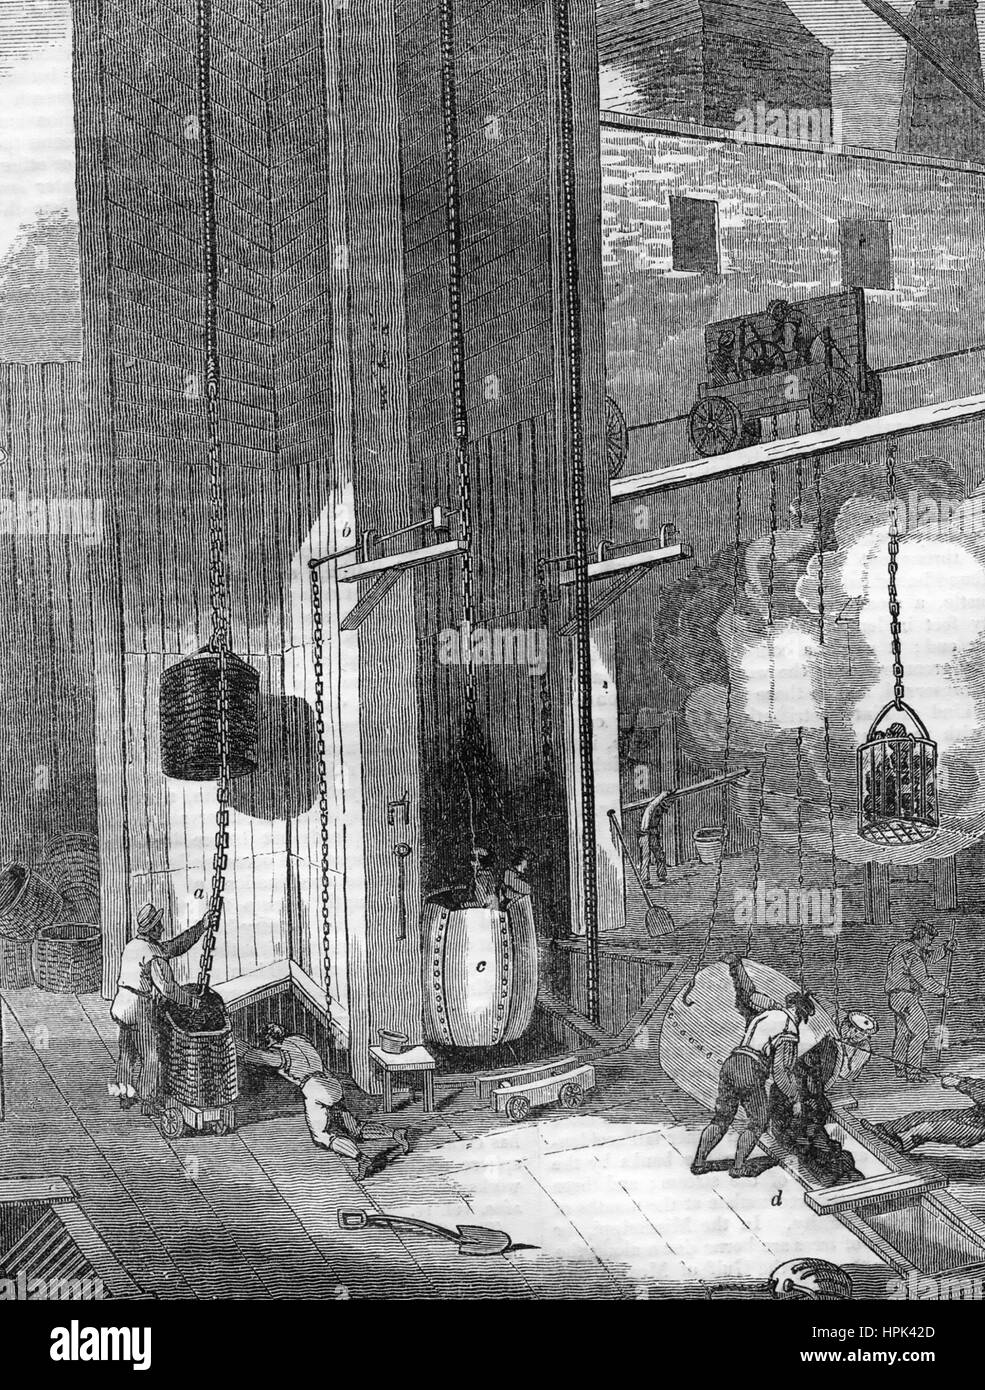 HULTON COLLIERY in the Lancashire coalfields, engraving about 1850 showing coal being hauled up from the mines owned - Stock Image